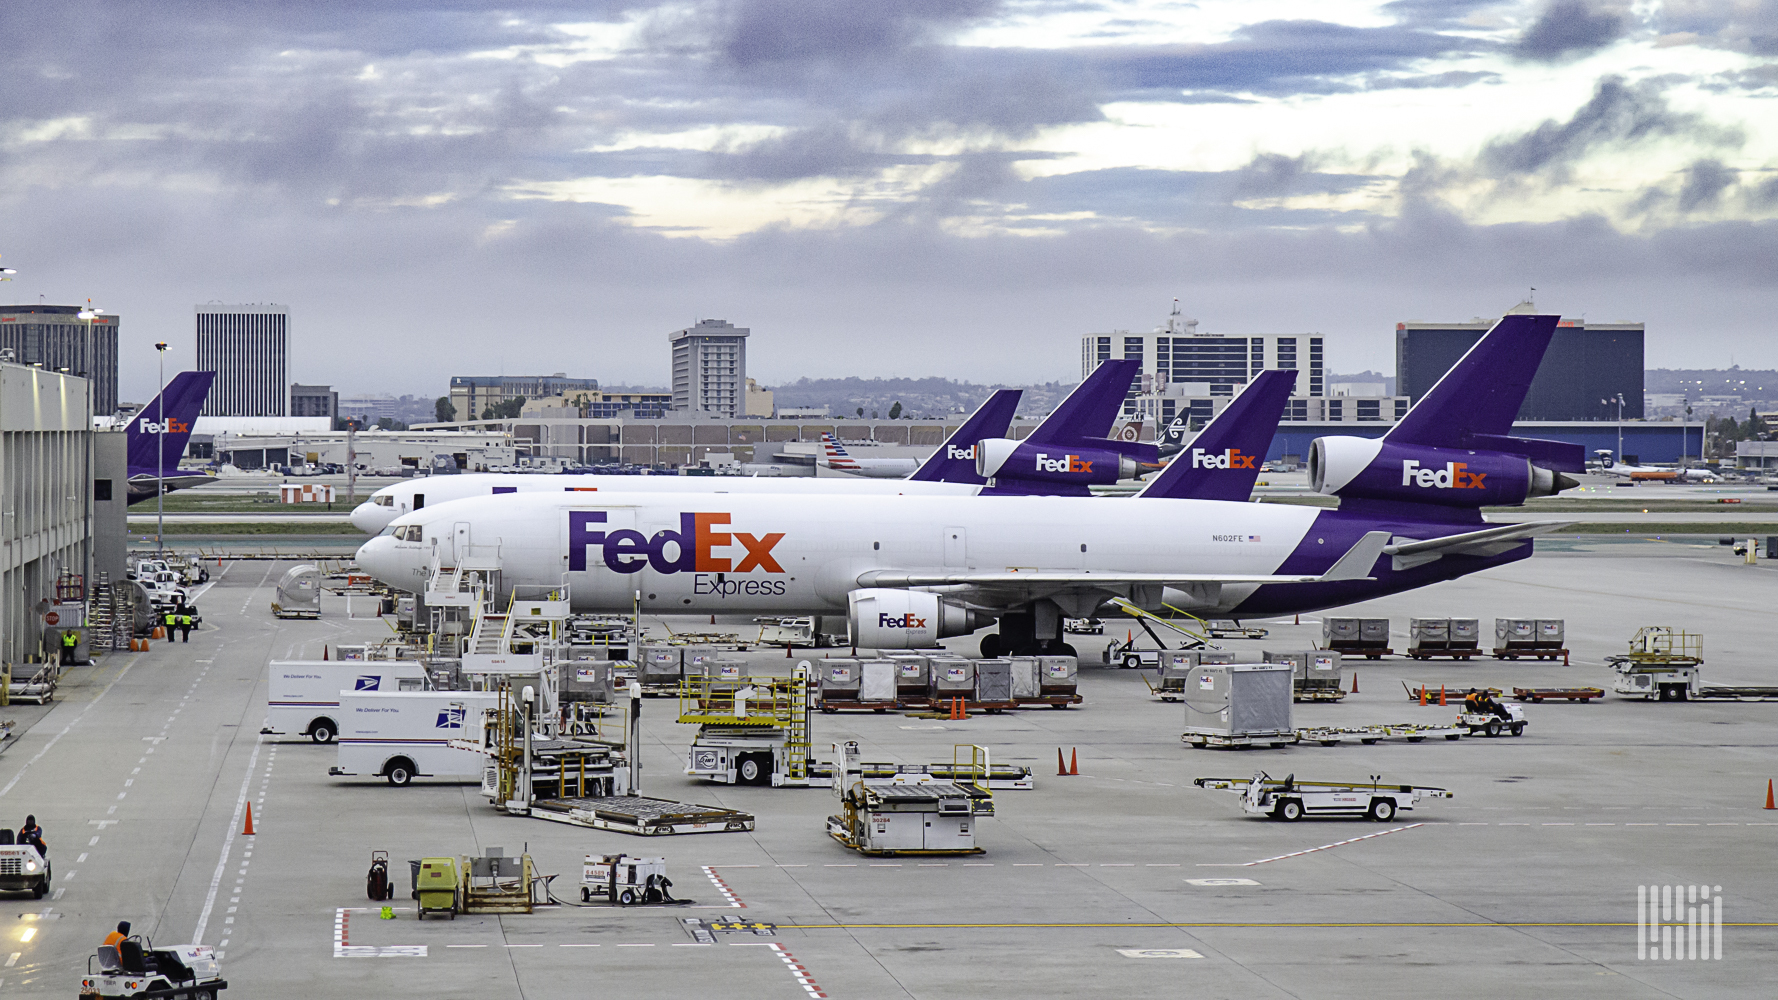 Several FedEx planes lined up at an airport terminal.